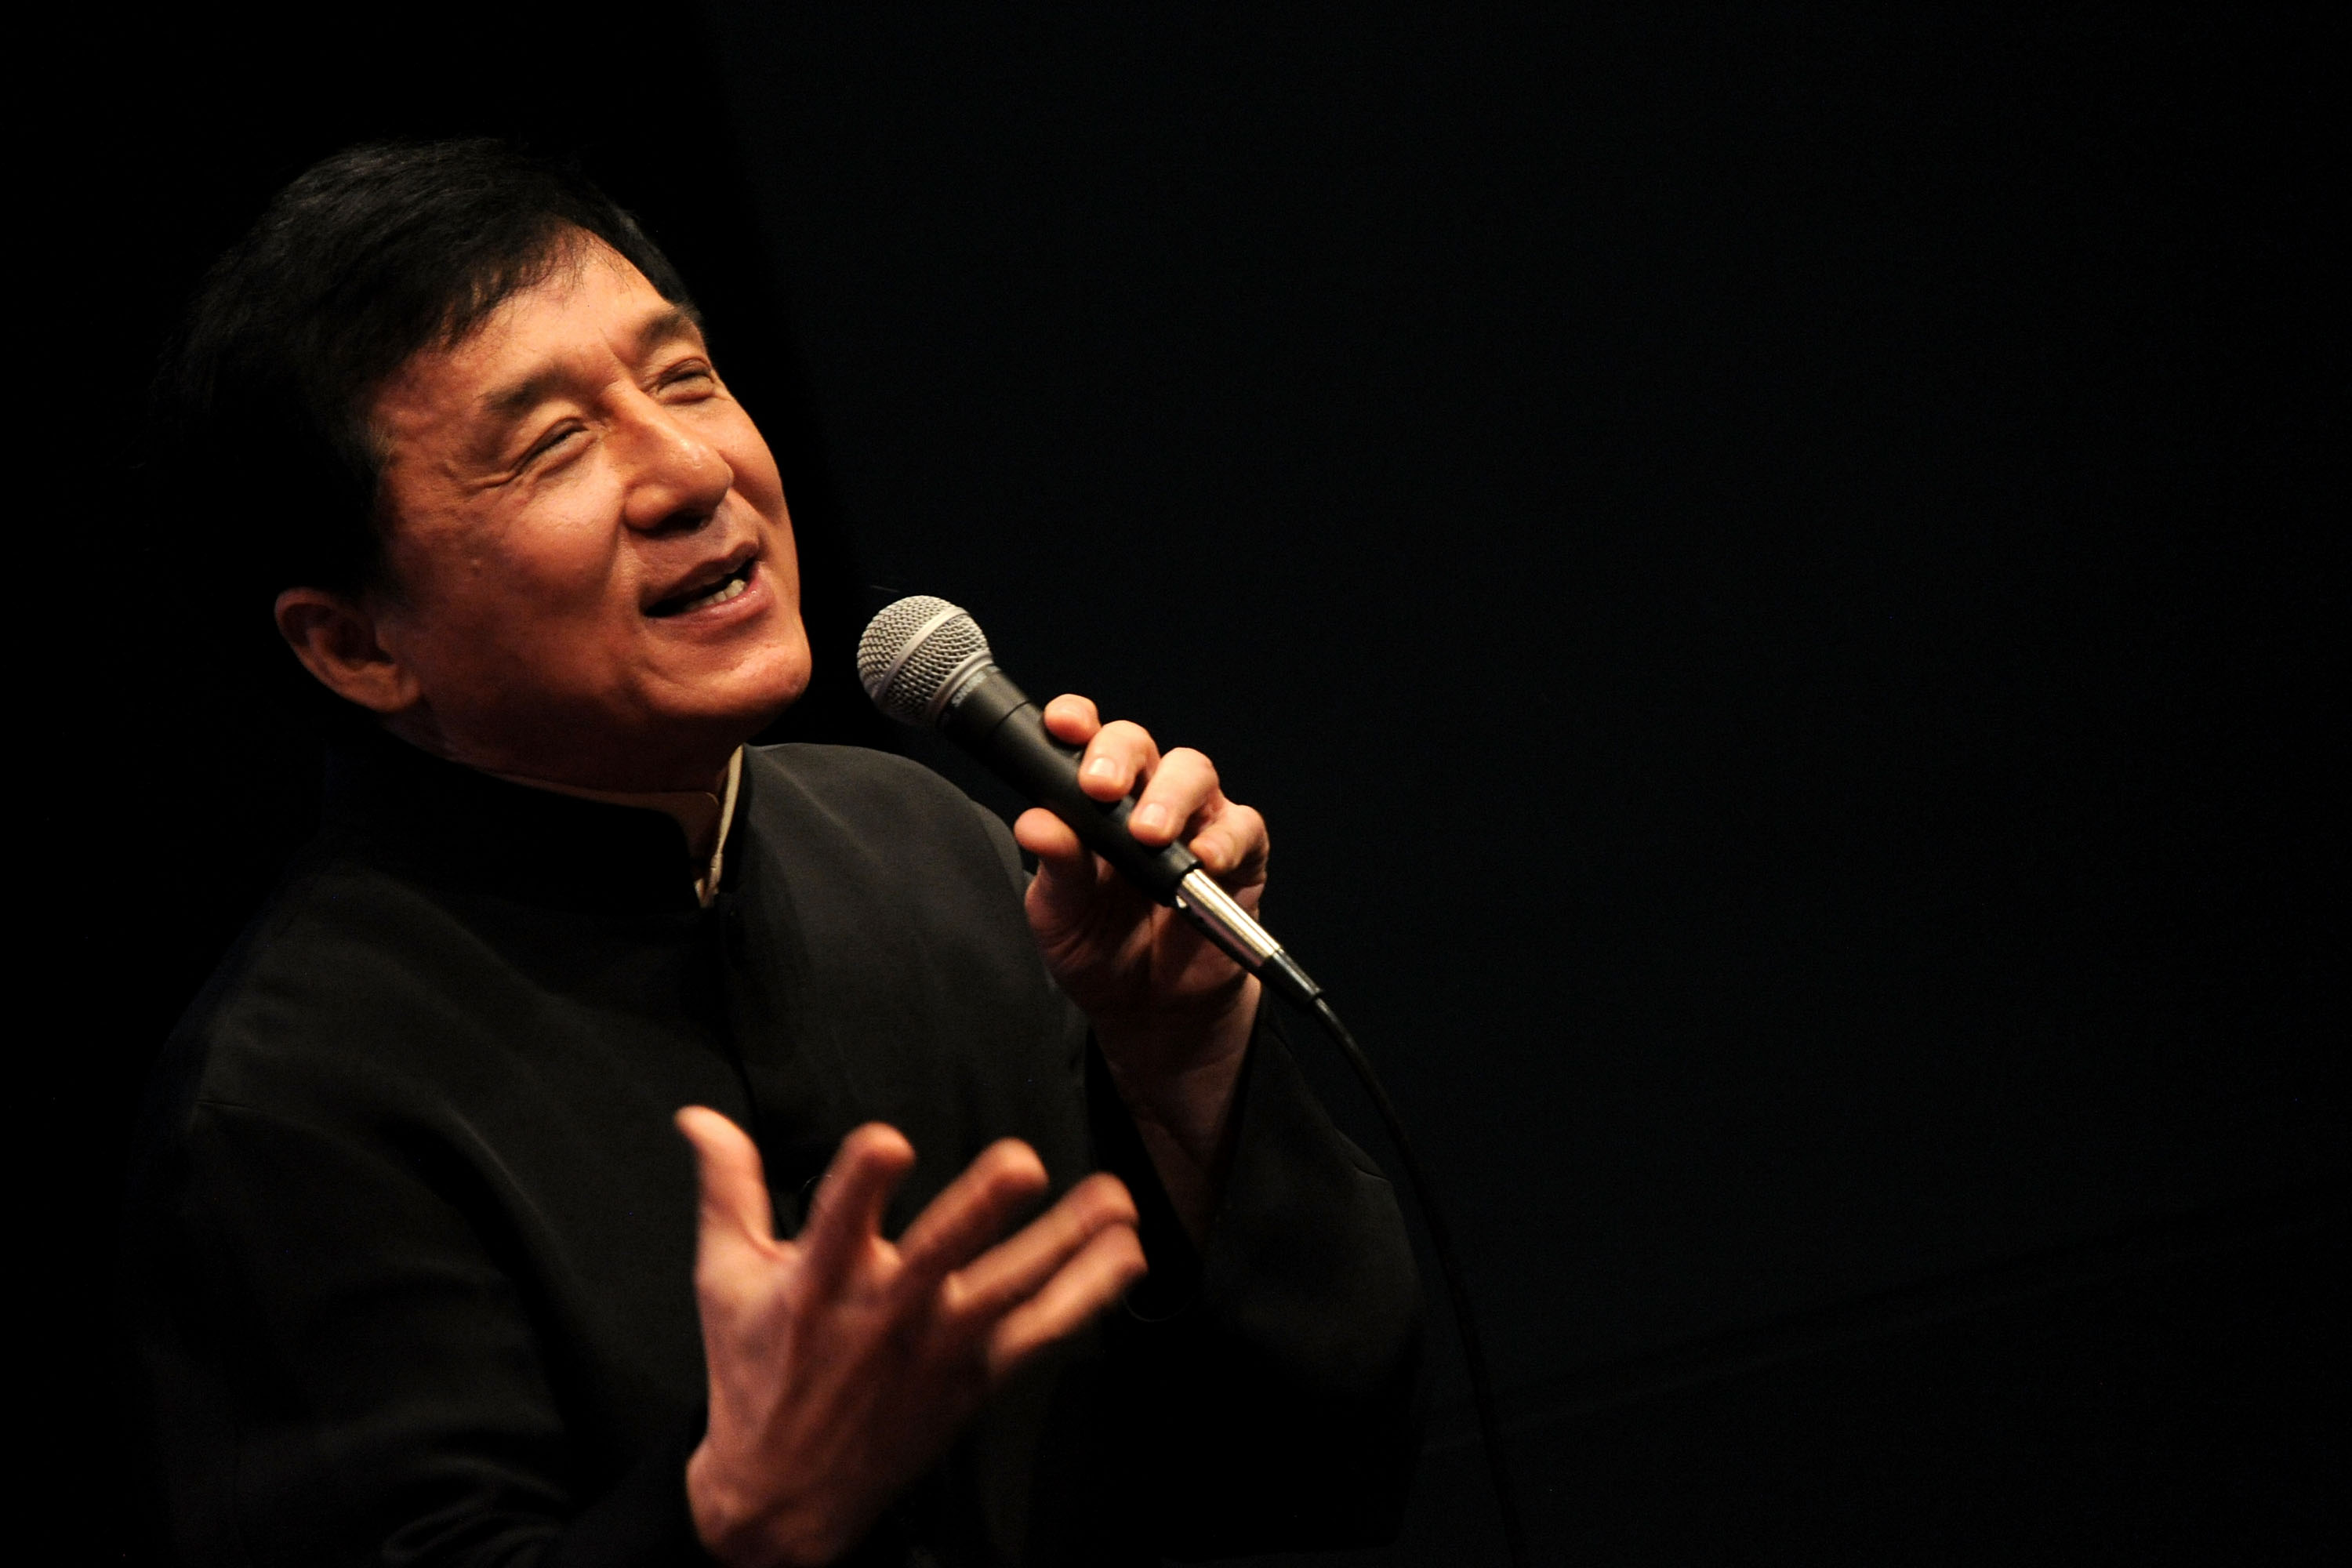 Chan Kongsang SBS MBE PMW 陳 港 生 born 7 April 1954 known professionally as Jackie Chan is a Hong Kong martial artist actor film director producer